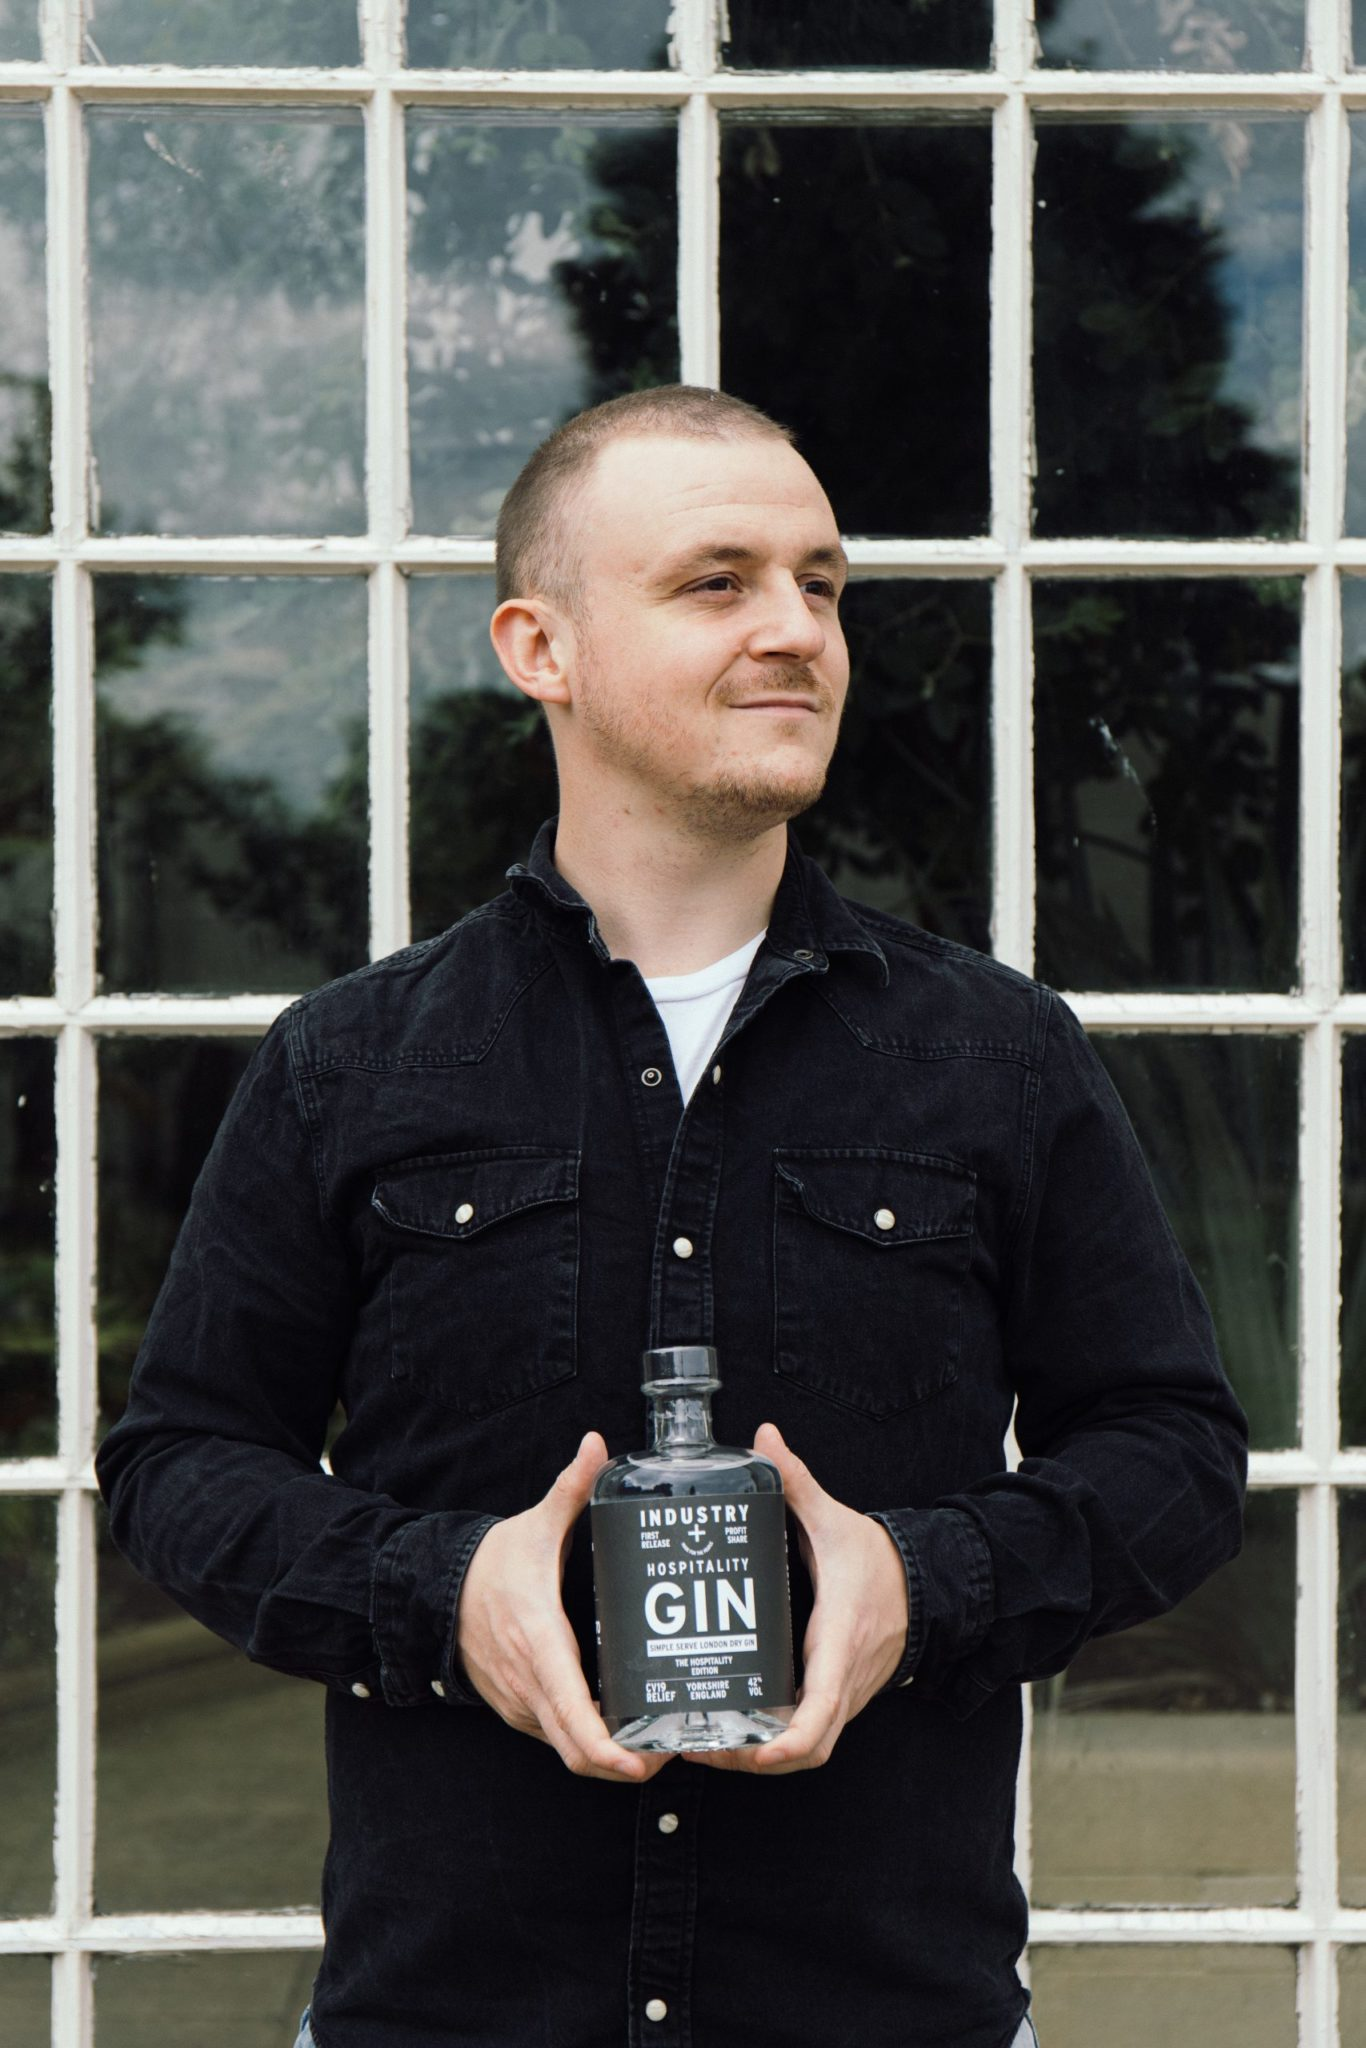 hospitality-gin-tt-liquor-tom-lord-interview-virtual-cocktail-classes